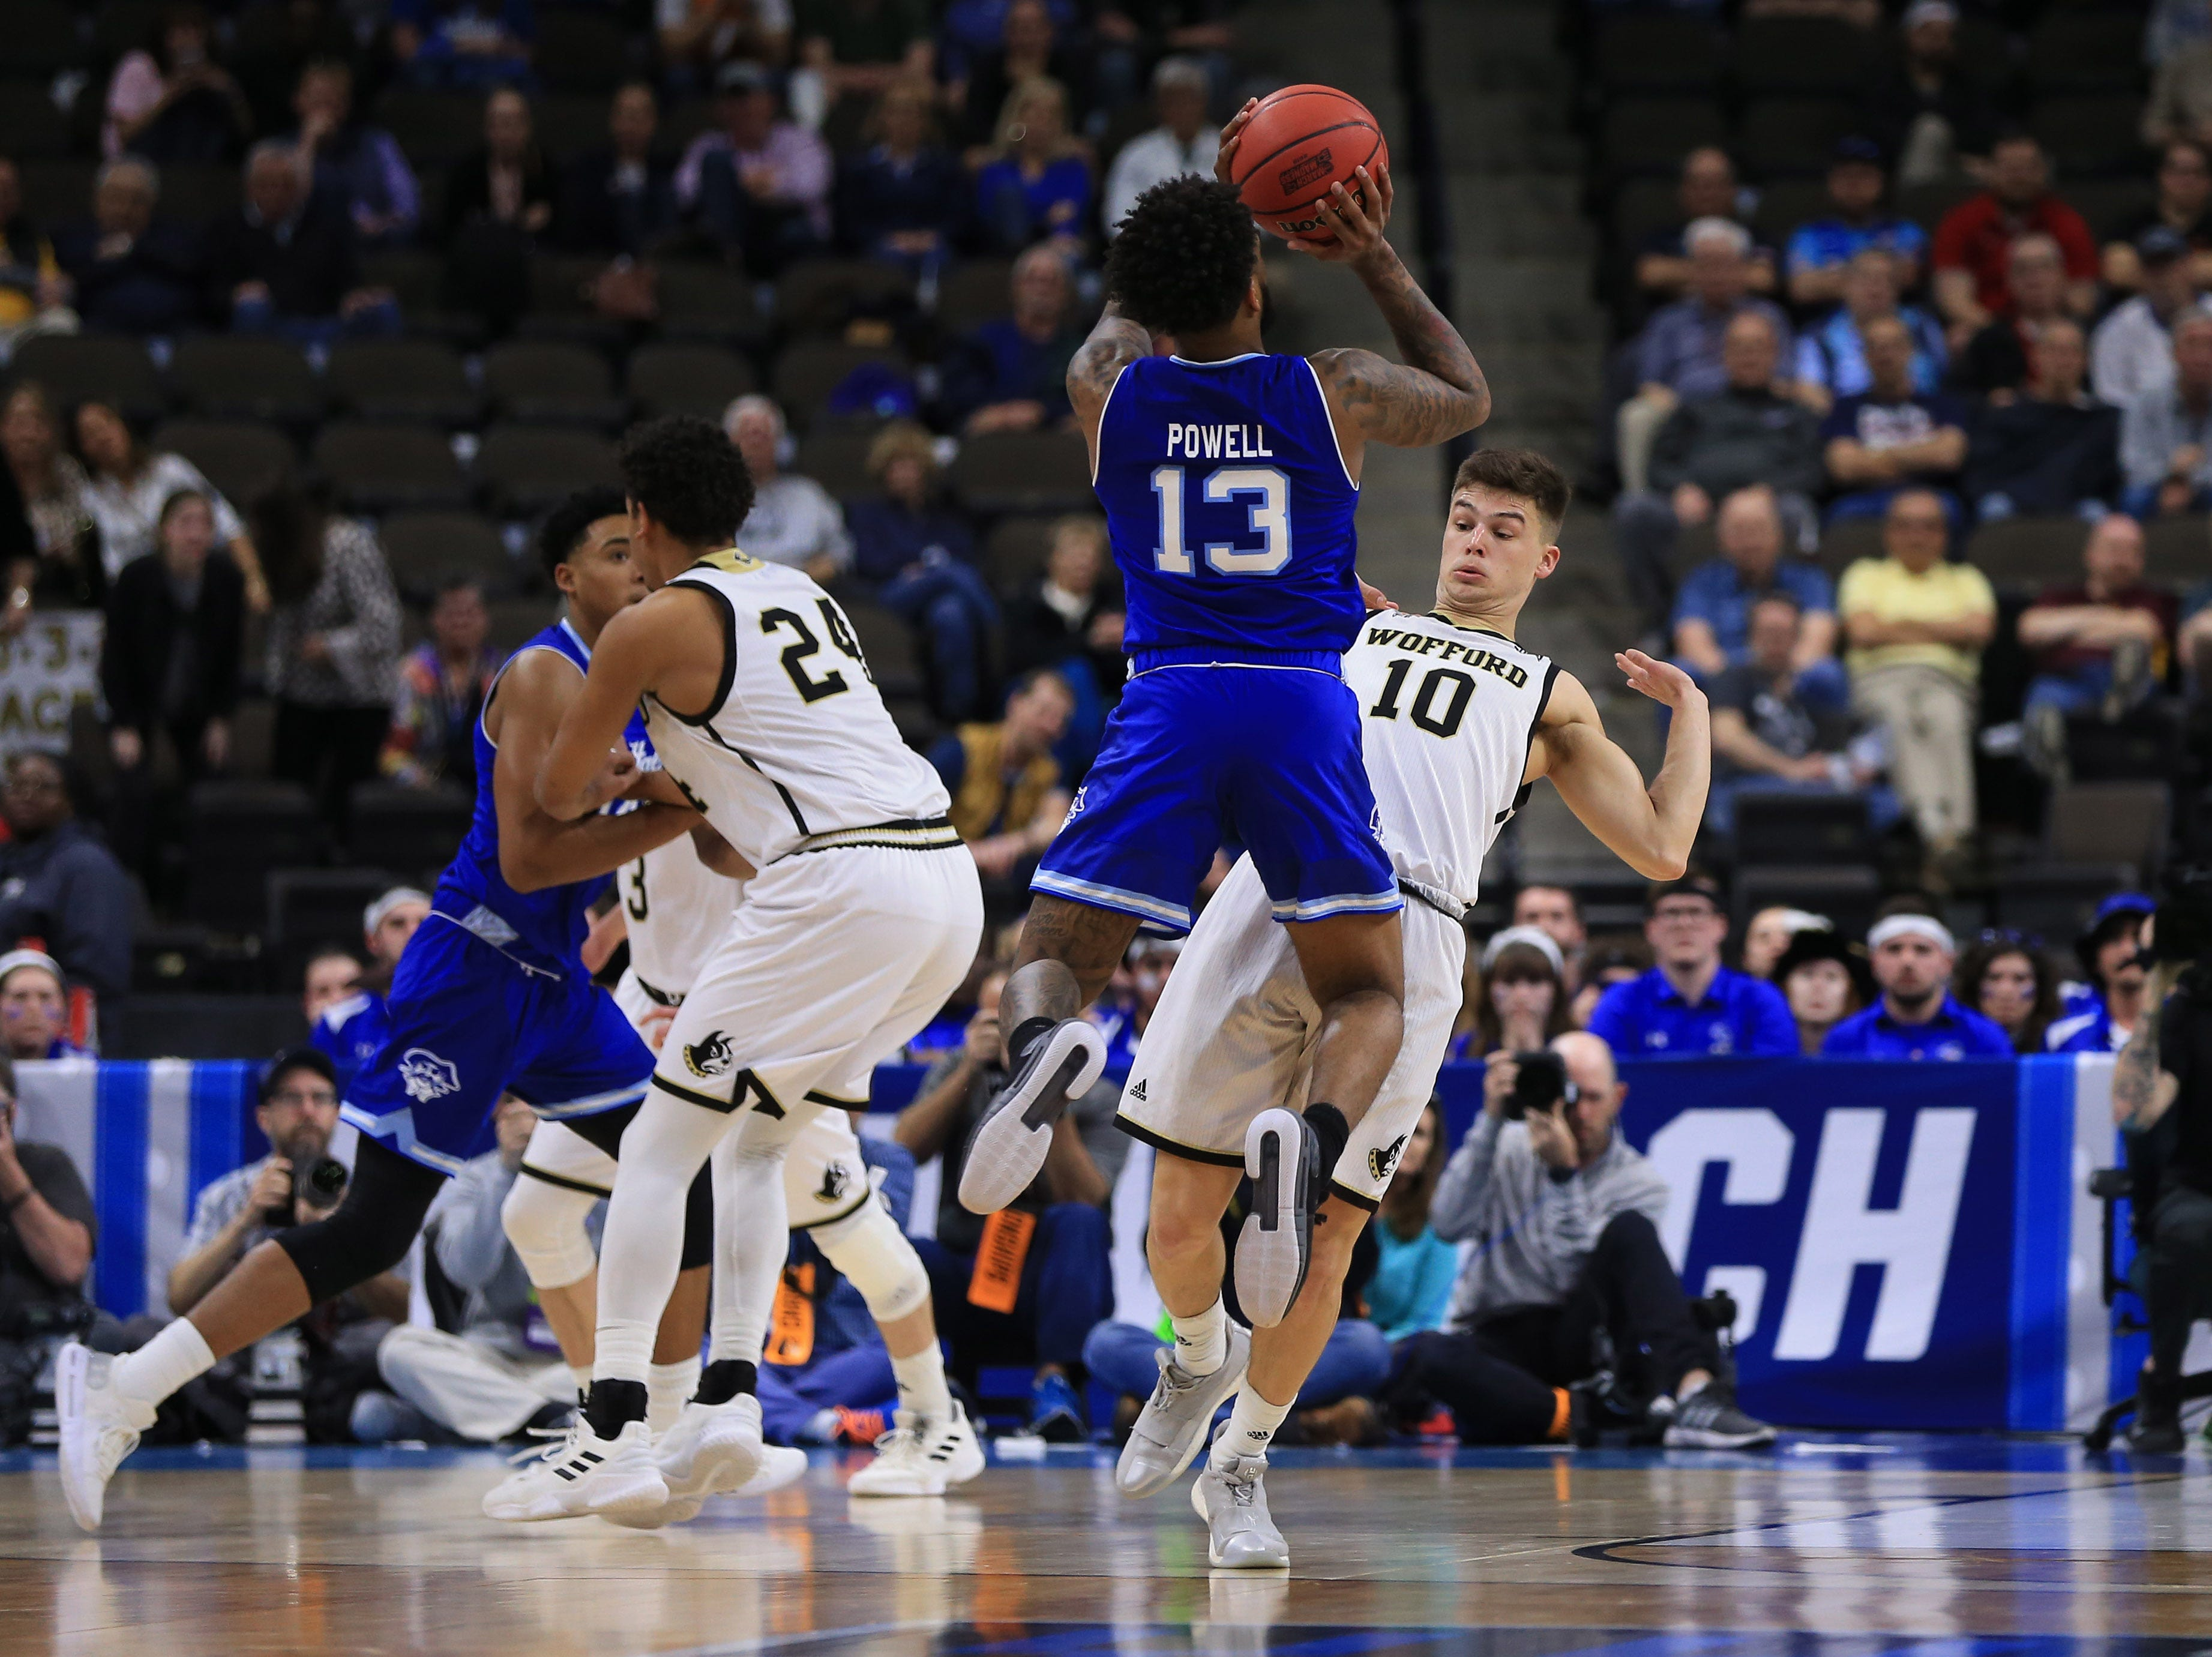 Mar 21, 2019; Jacksonville, FL, USA; Wofford Terriers guard Nathan Hoover (10) defends a shot by Seton Hall Pirates guard Myles Powell (13) during the second half in the first round of the 2019 NCAA Tournament at Jacksonville Veterans Memorial Arena. Mandatory Credit: Matt Stamey-USA TODAY Sports